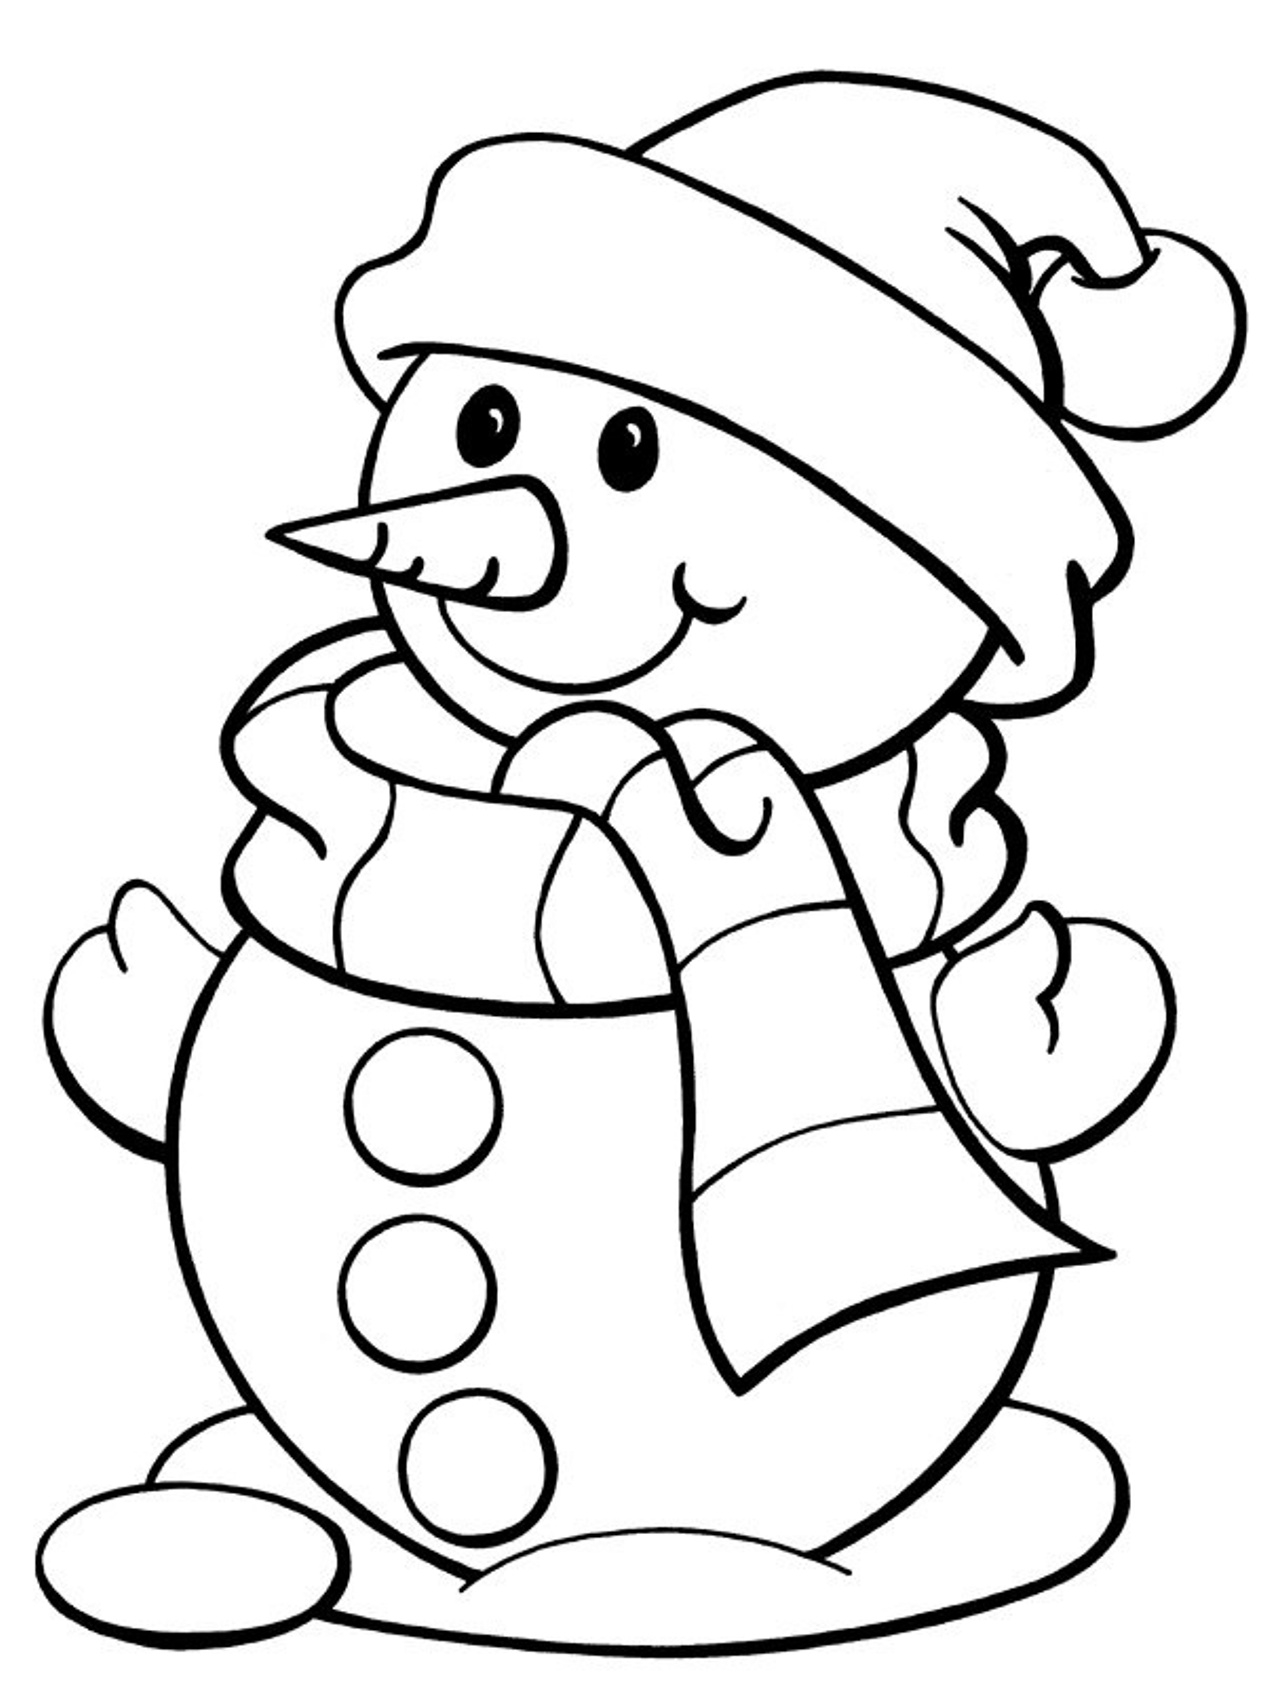 winter activities coloring pages | Winter coloring pages to download and print for free